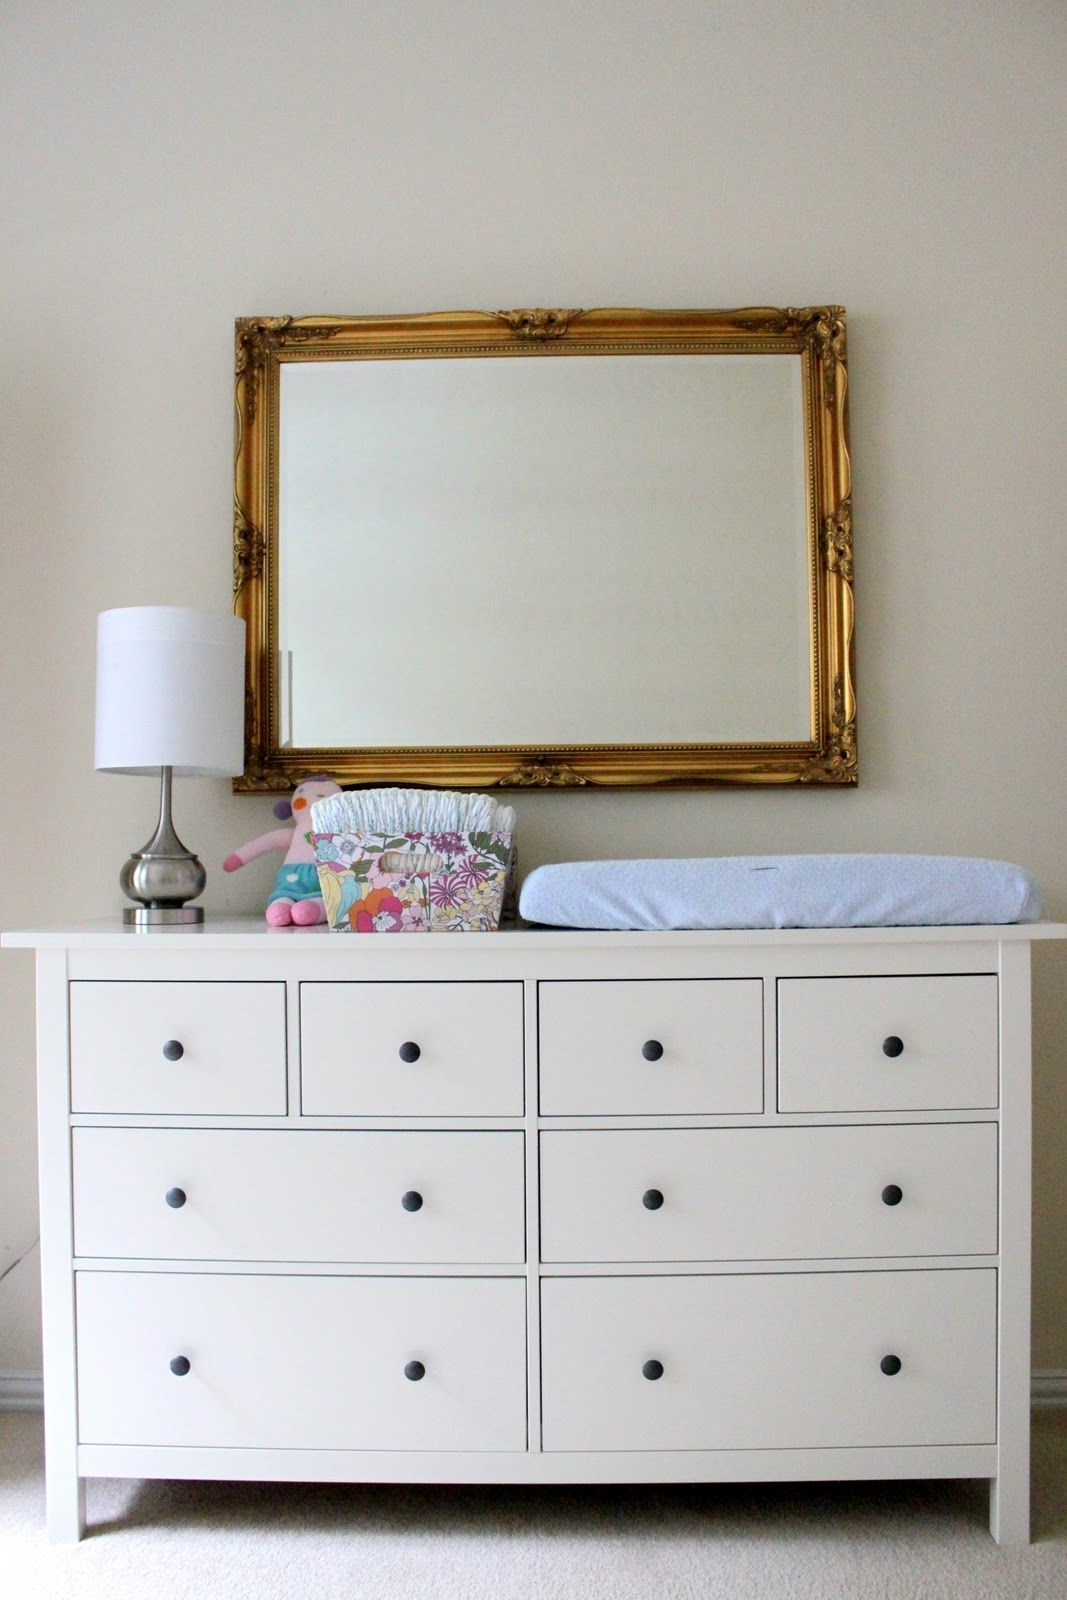 Possible Dresser Ikea Hemnes Could Use As Changing Table Combo And Put Desk Cur In Guest Room